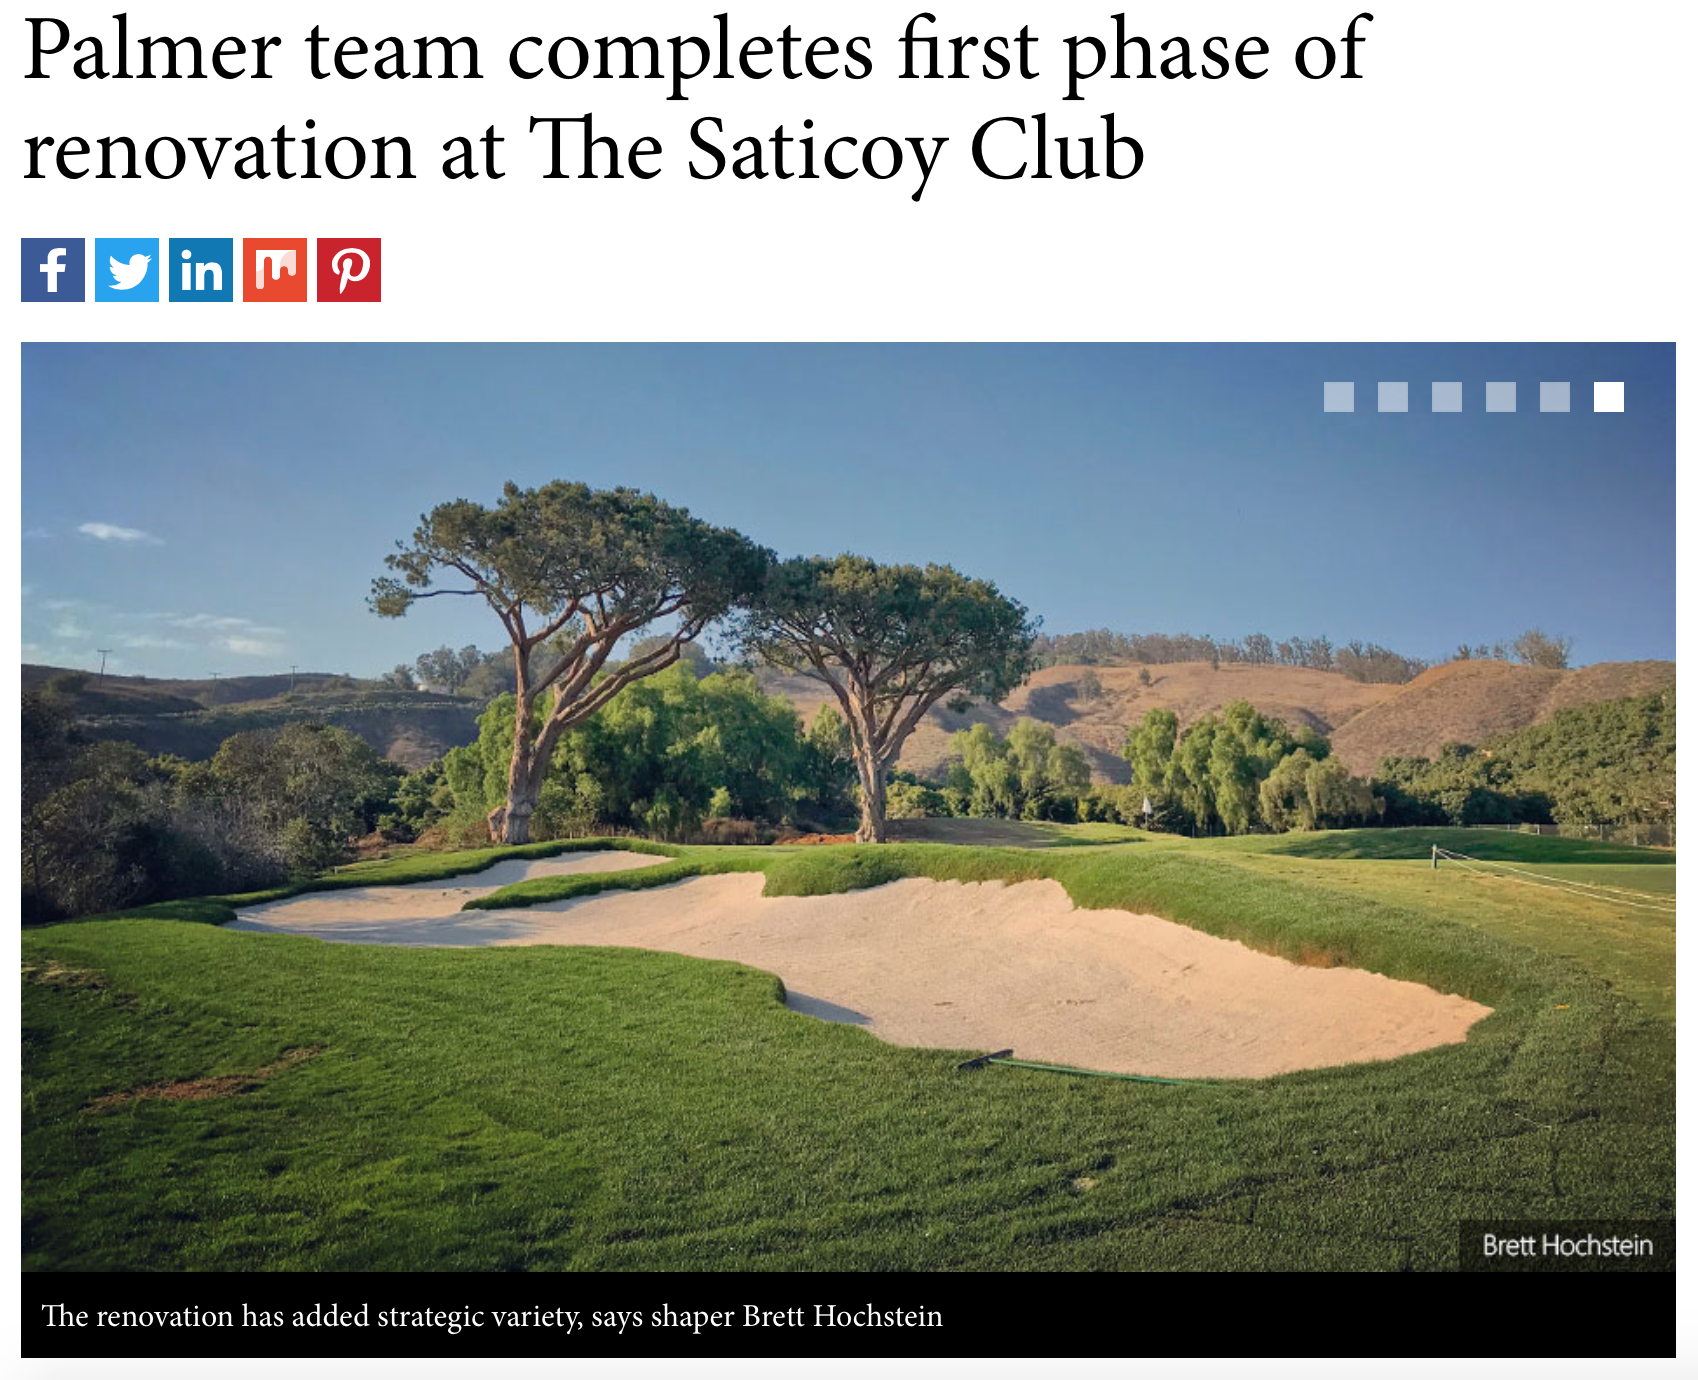 Hochstein-Design-Golf-Course-Architecture-Saticoy.png